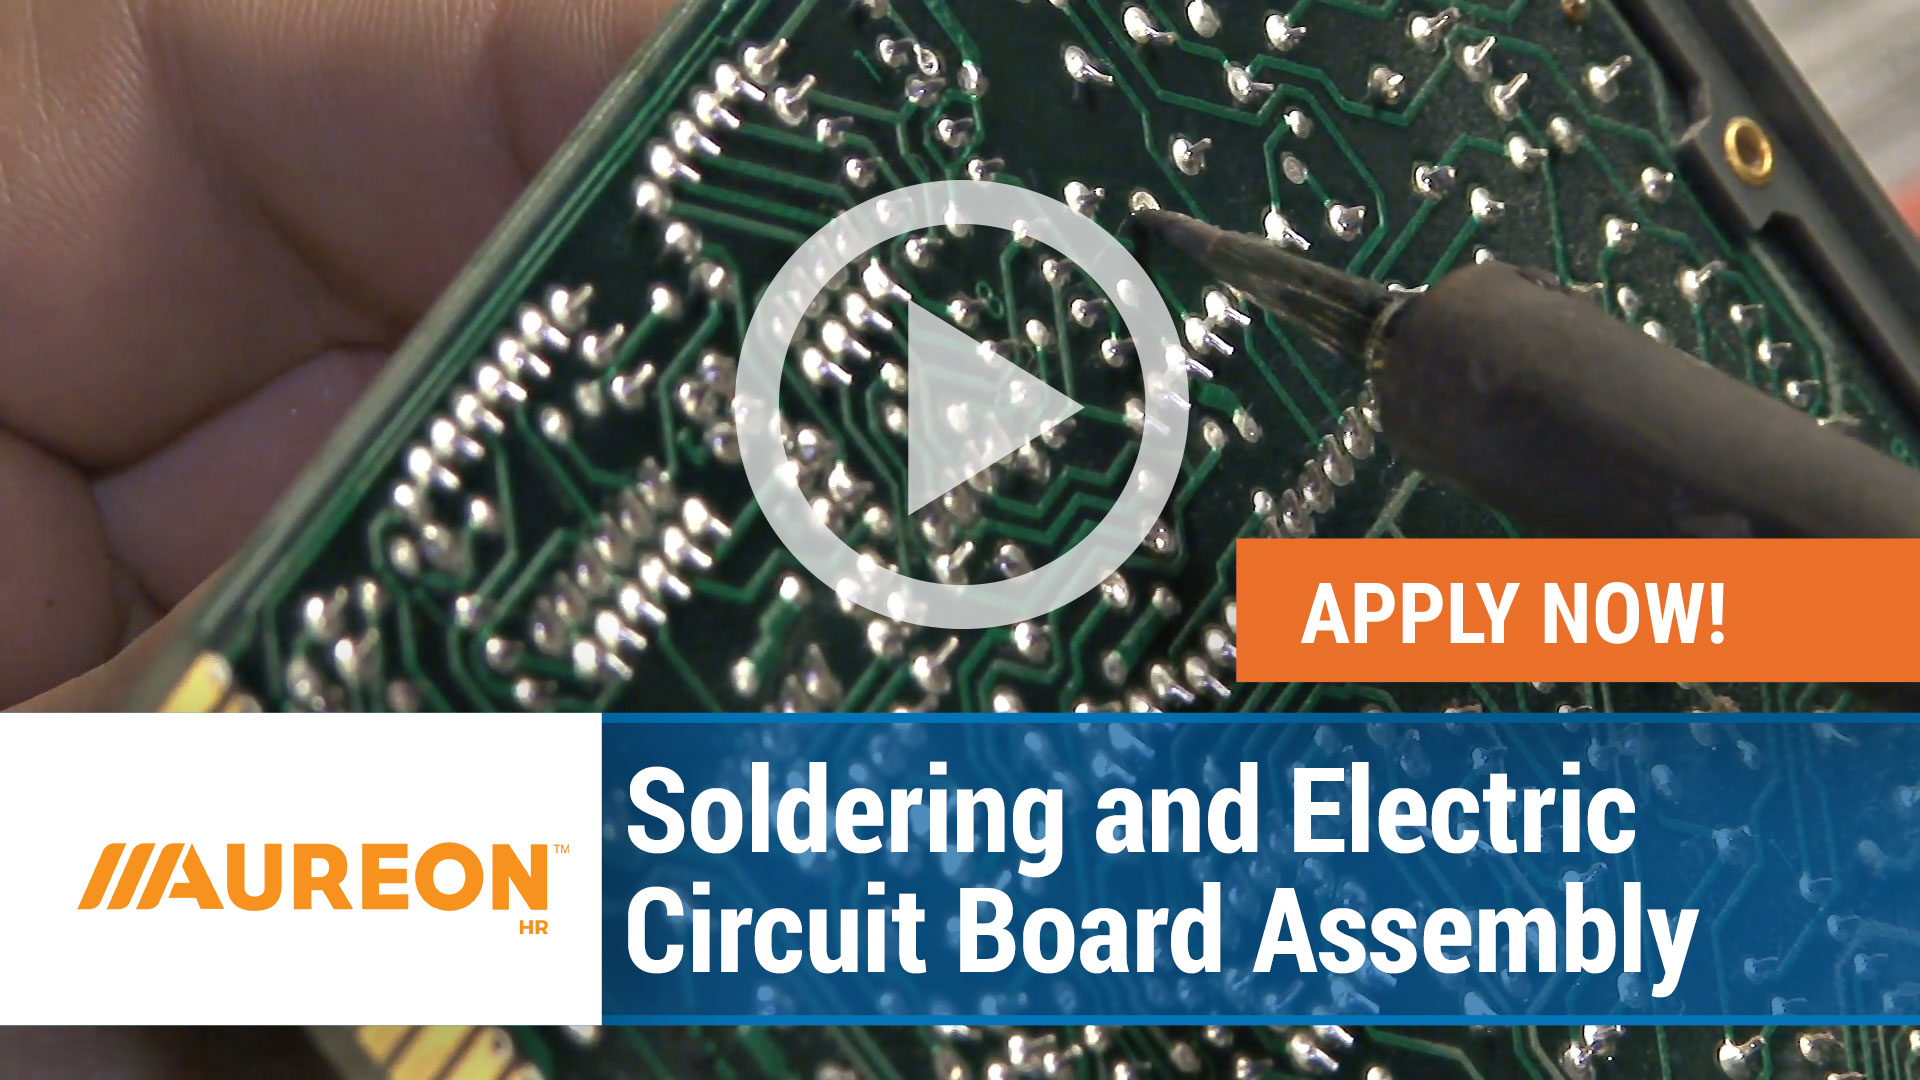 Watch our careers video for available job opening Soldering and Electric Circuit Board Assembly in Urbandale